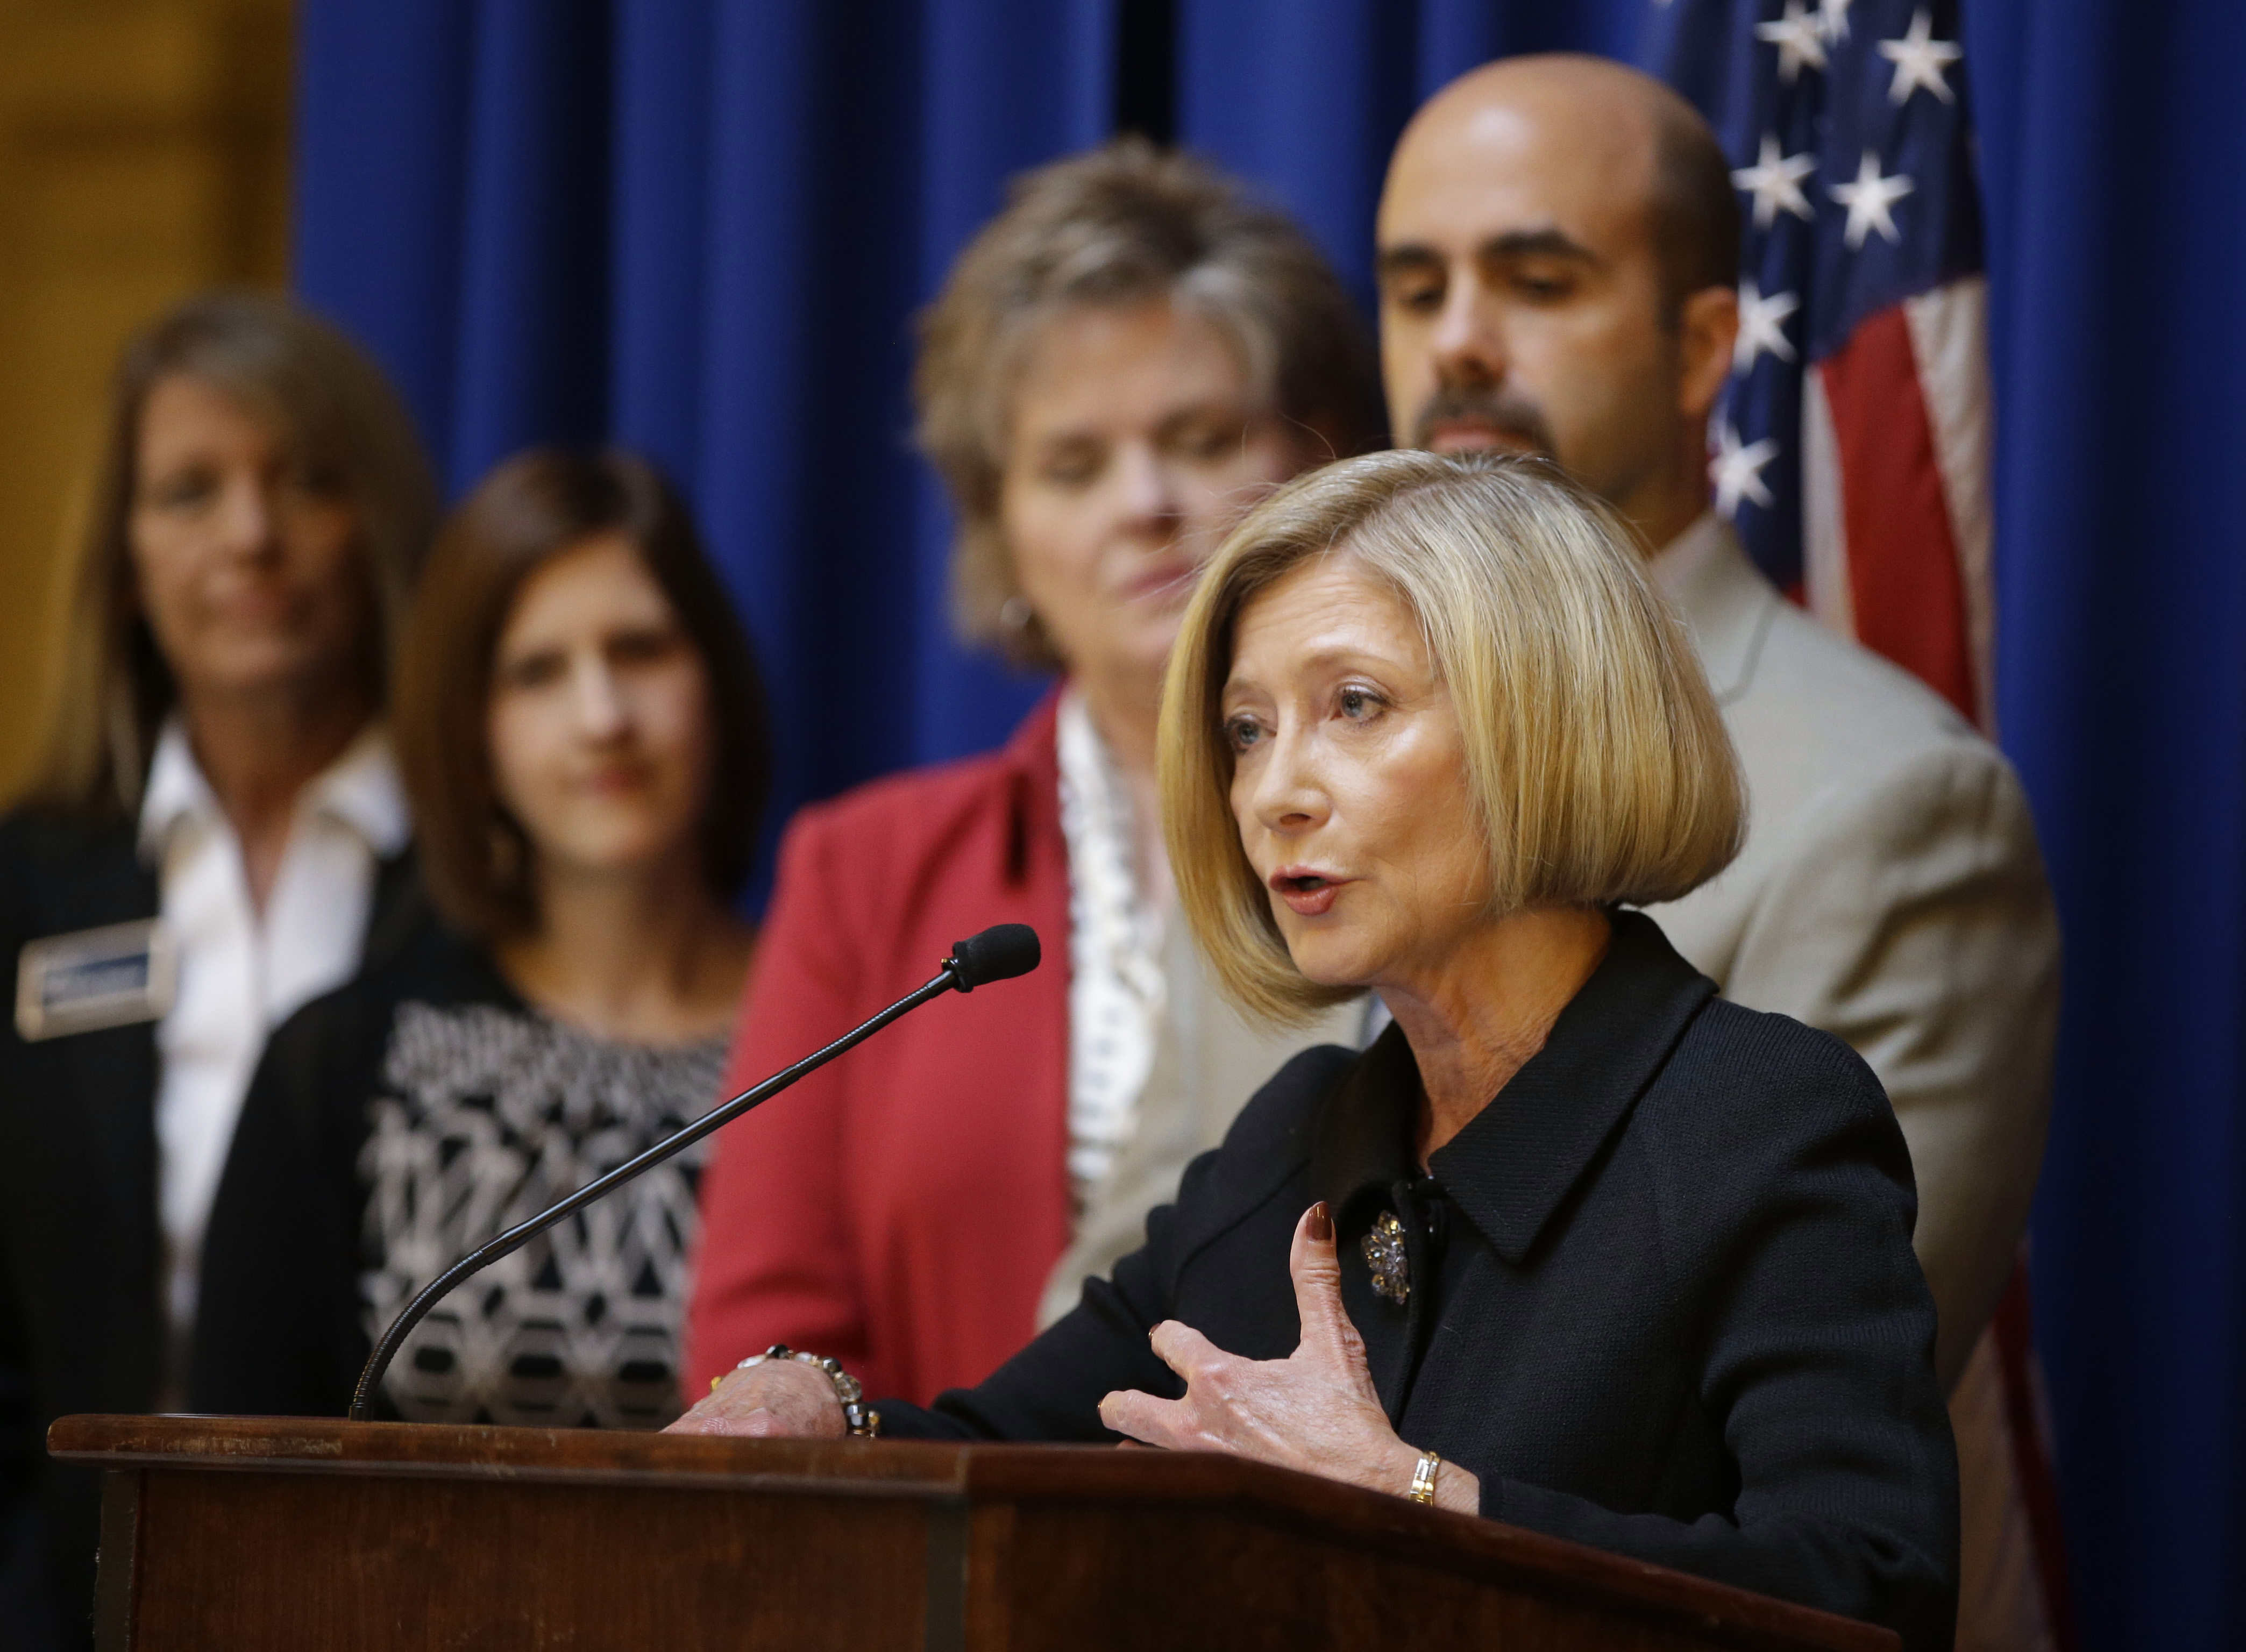 FILE - In this Sept. 23, 2015, file photo, former federal prosecutor Deborah Daniels speaks about the newly-formed Indiana Coalition to End Sexual Assault, at the Statehouse in Indianapolis. USA Gymnastics needs to undergo a complete cultural change to be